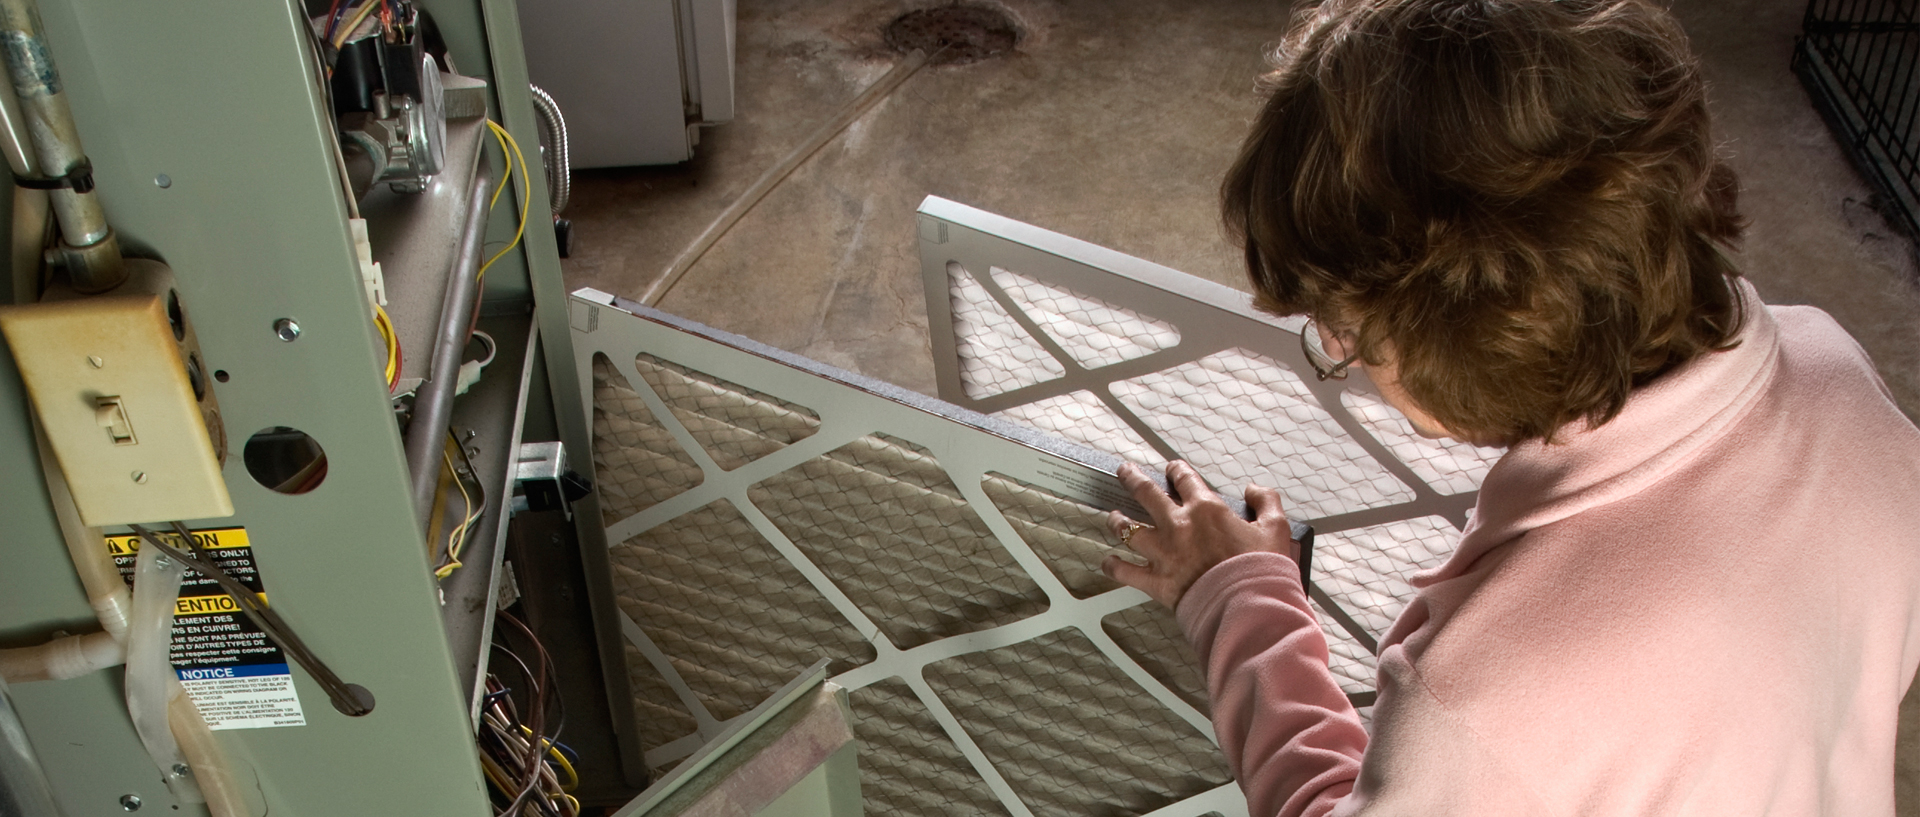 How To Replace Furnace Filters Consumer Reports